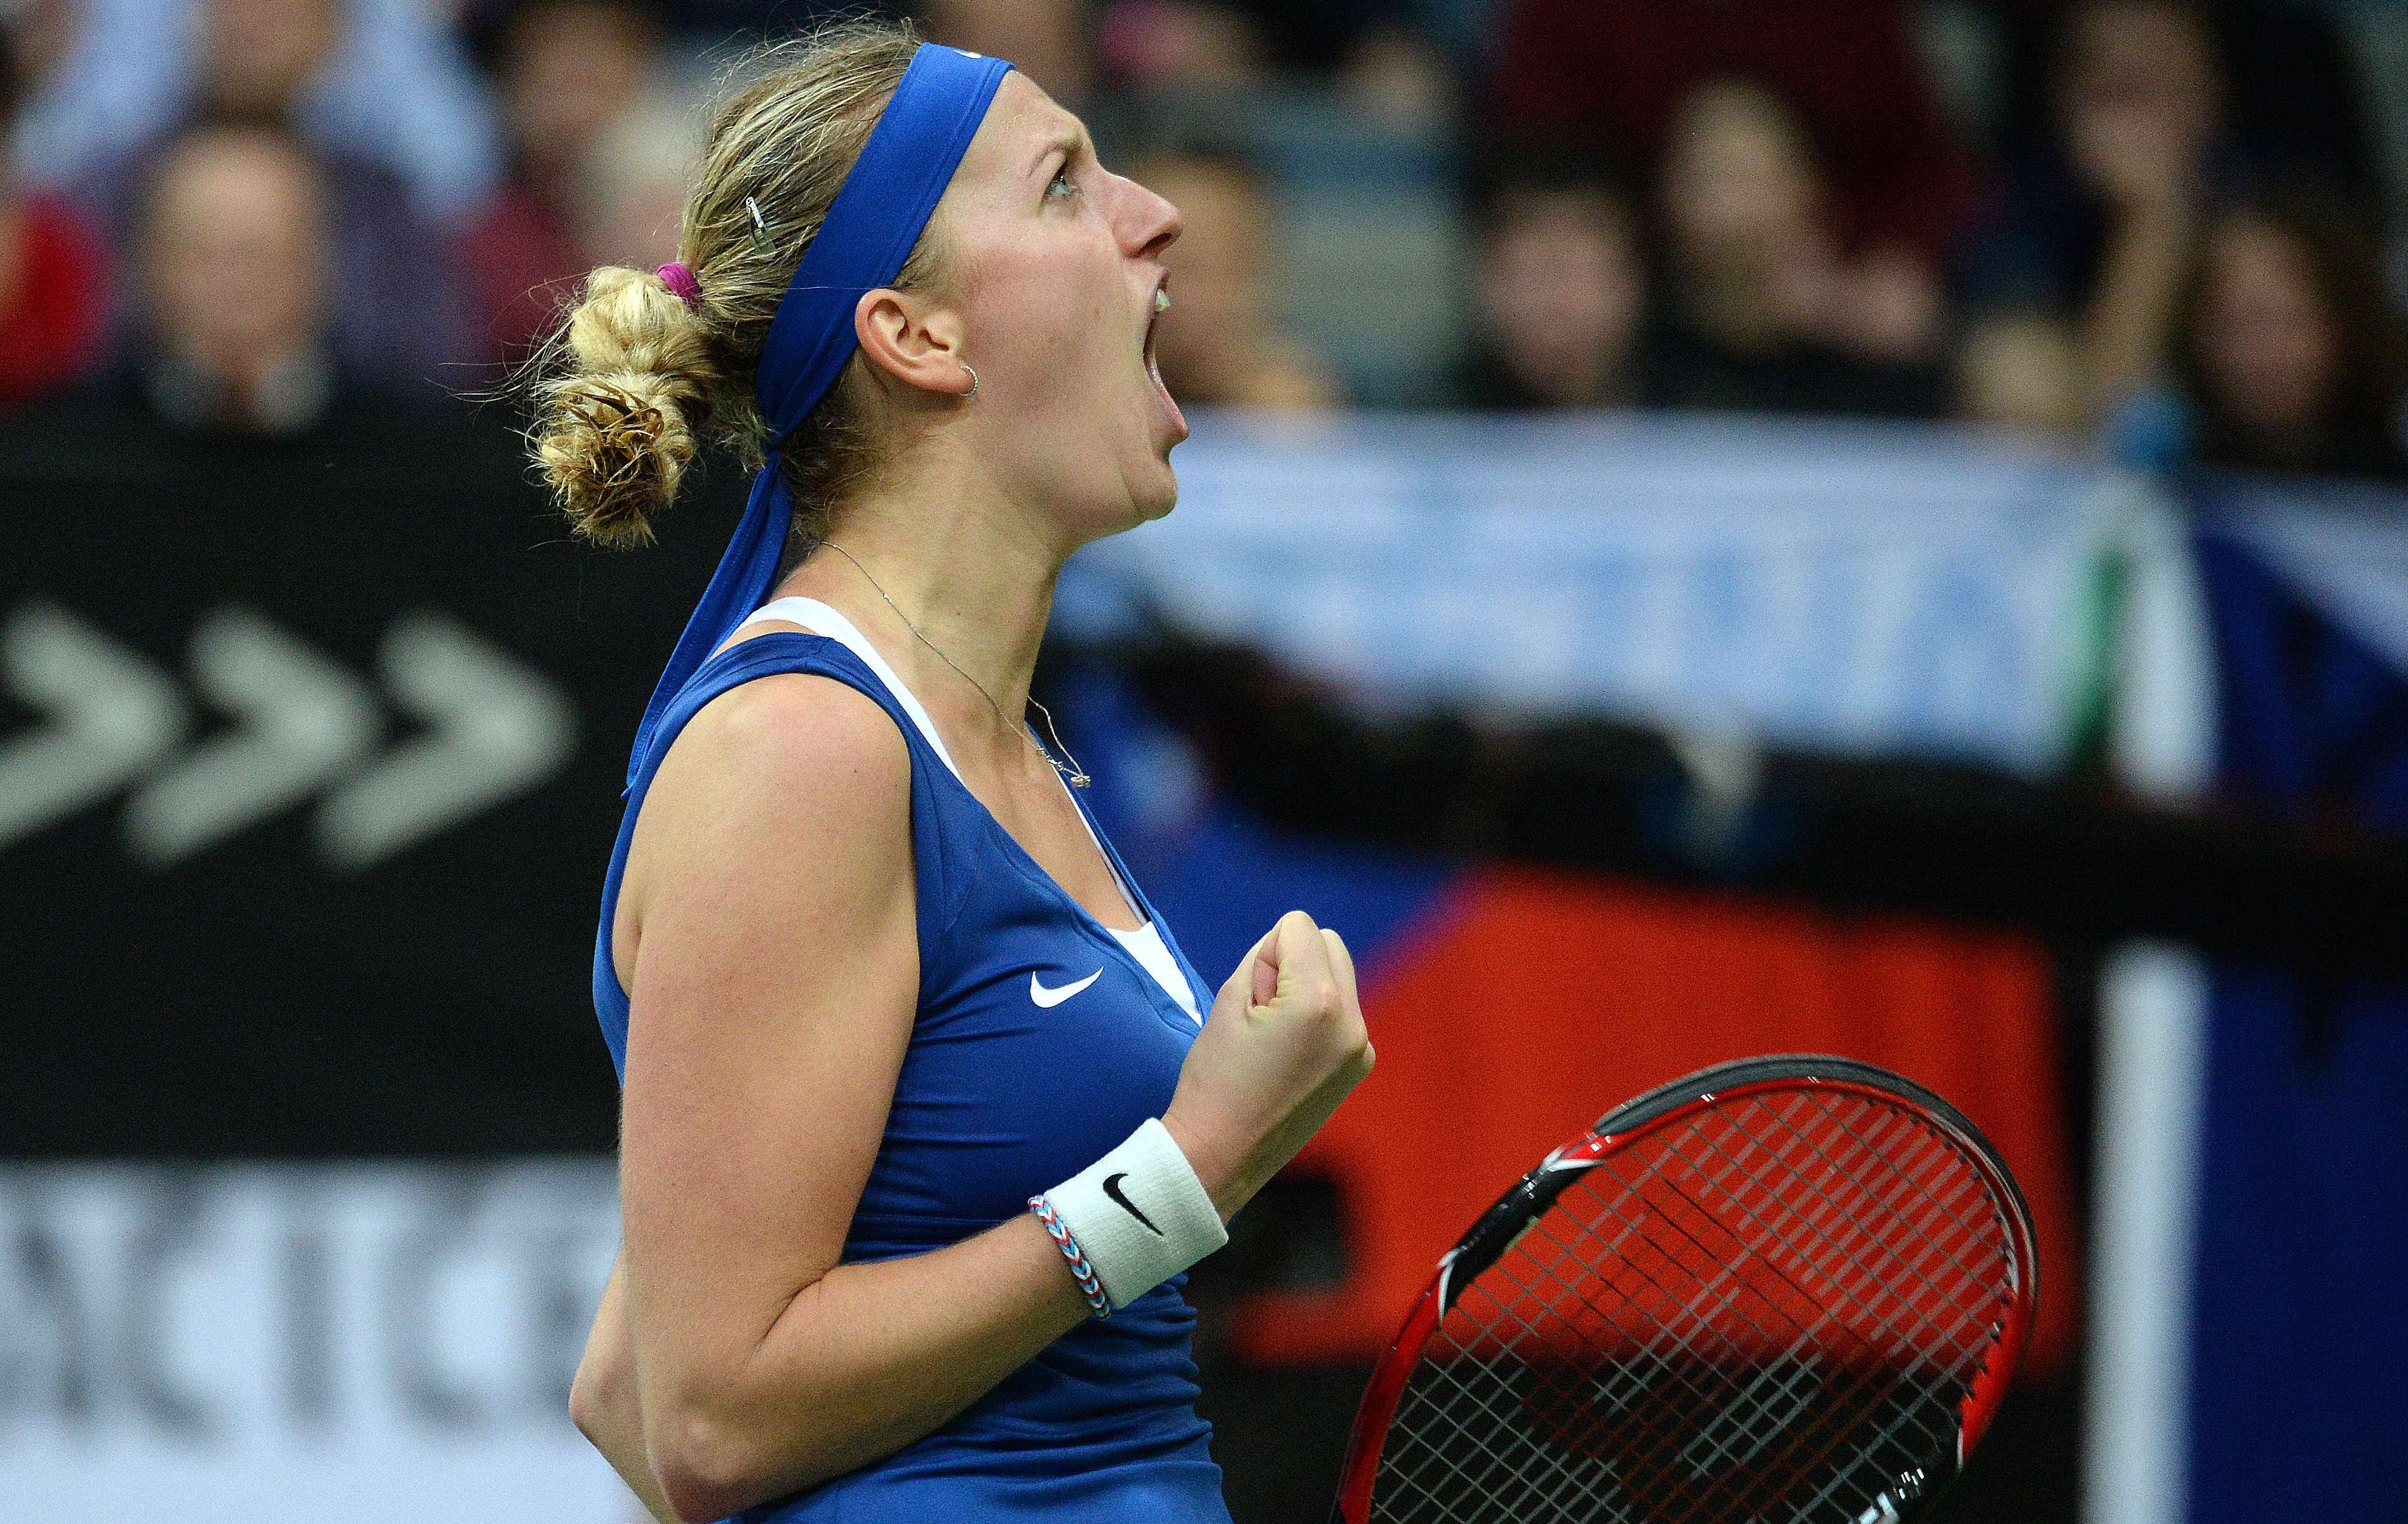 Tennis : Fed Cup - Les Tch�ques perp�tuent leur tradition